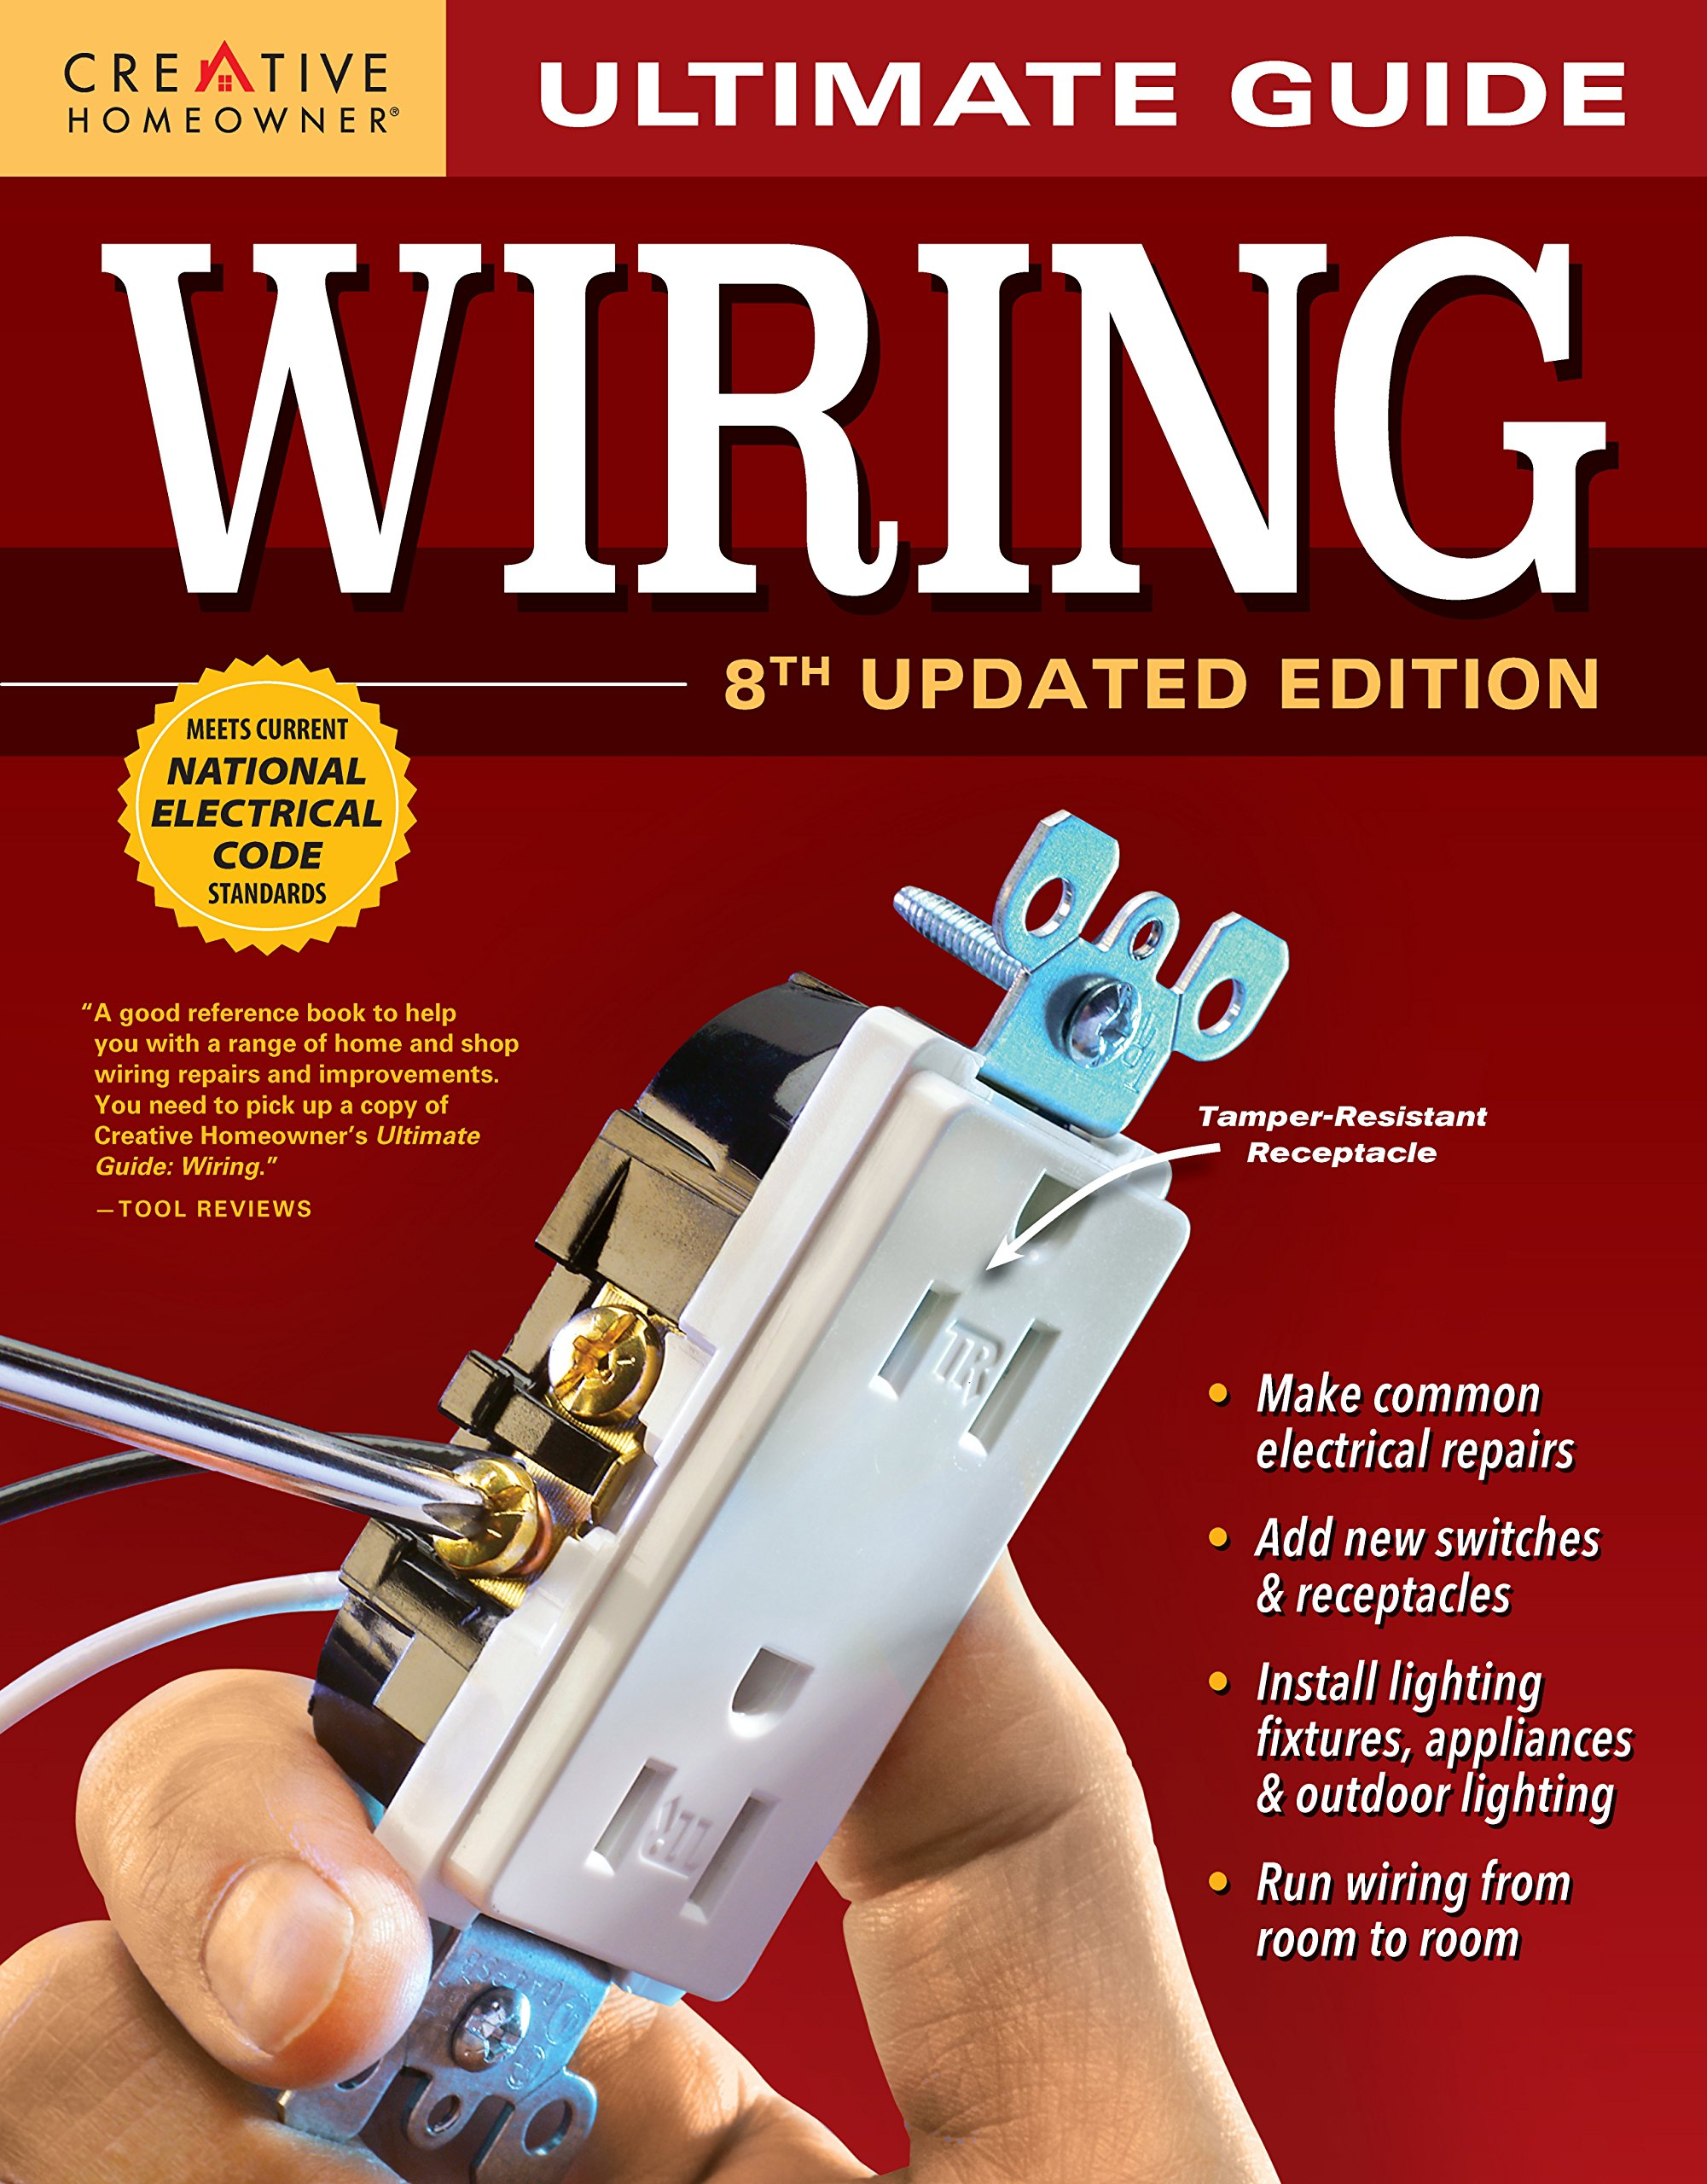 Ultimate Guide Wiring 8th Updated Edition Creative Homeowner Diy Rewiring Old Ligthing Fixture With Pull Switch Doityourselfcom Home Electrical Installations Repairs From New Switches To Indoor Outdoor Lighting